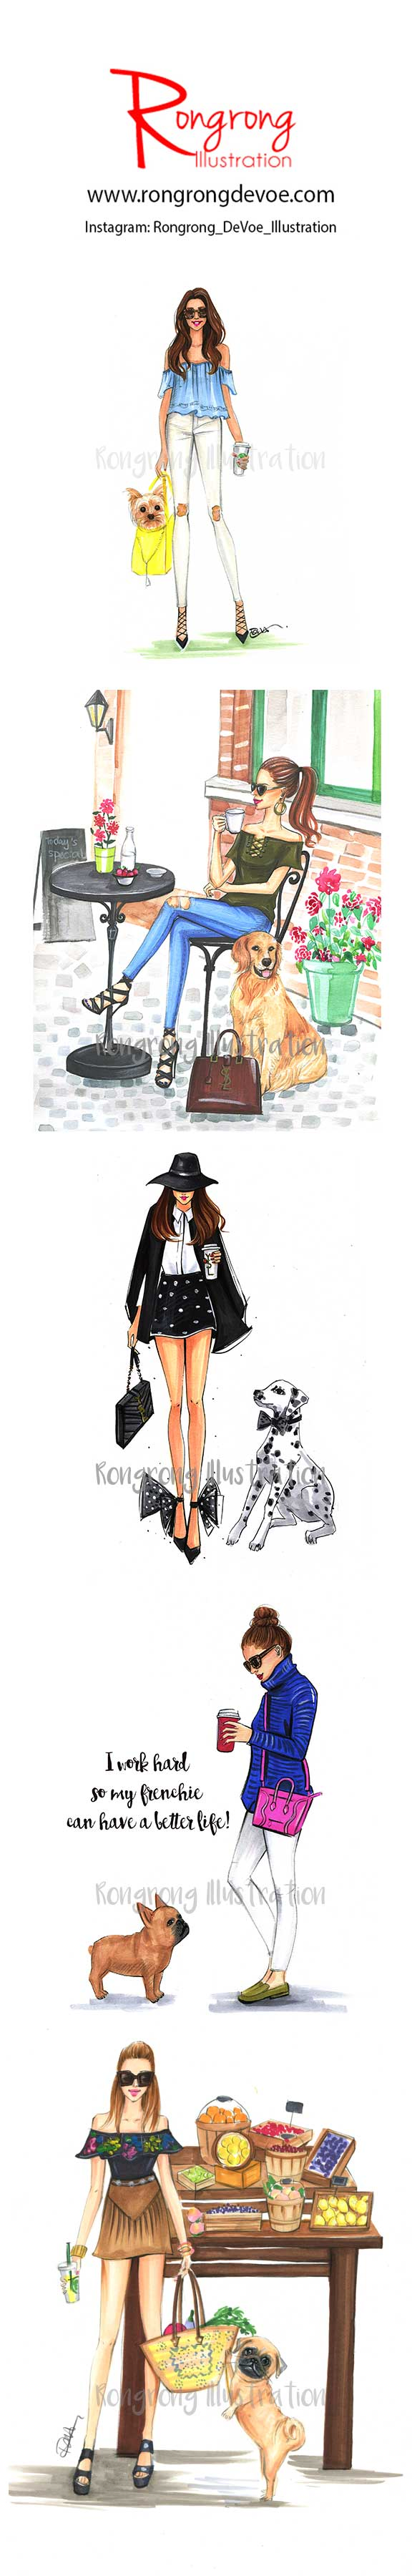 Fashionistas and their dogs fashion illustrations by Houston fashion illustrator Rongrong DeVoe. More fashion art at www.rongrongillustration.etsy.com